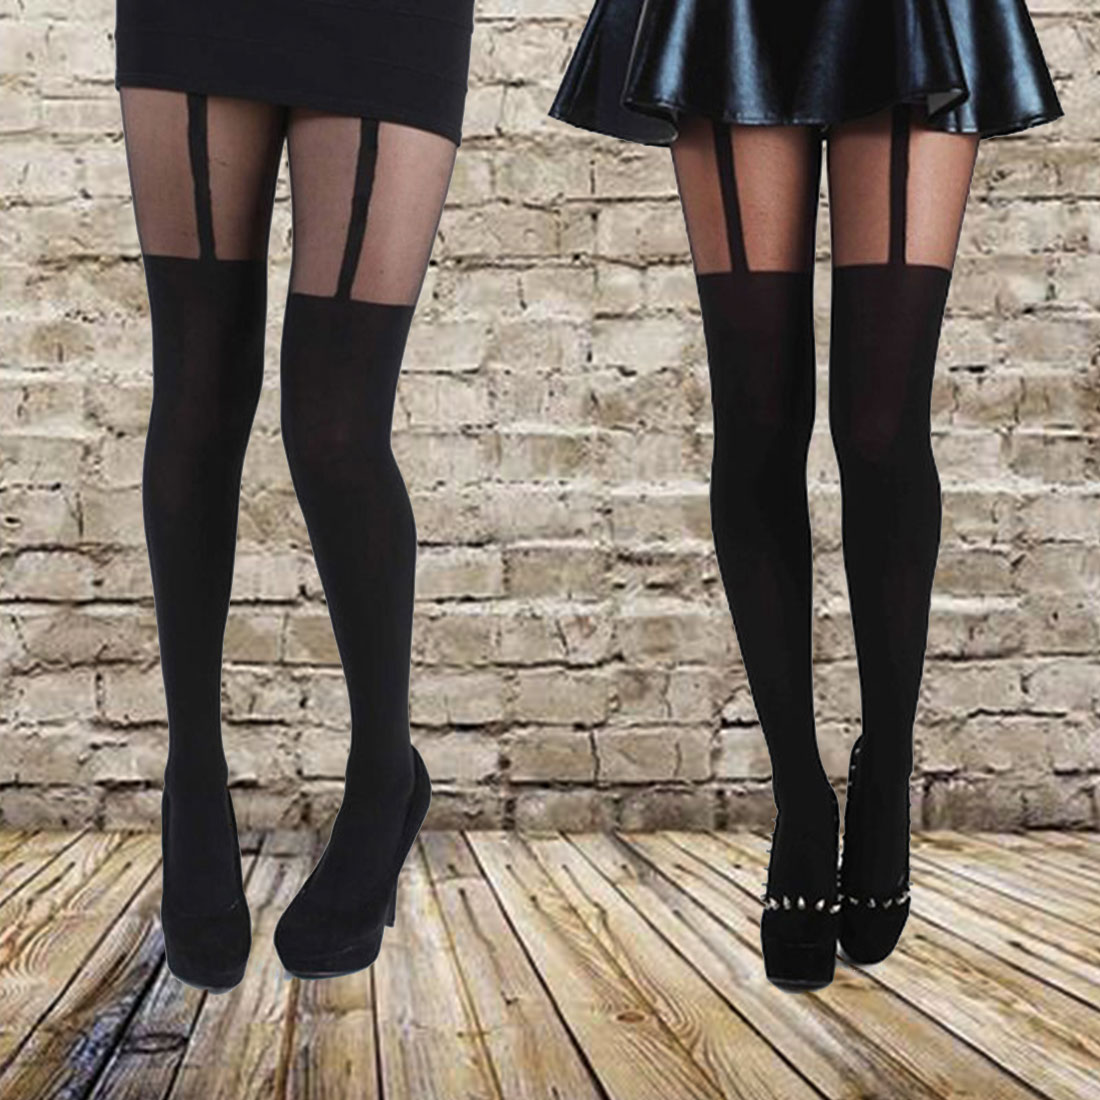 10d631b28 Detail Feedback Questions about New Latest Design Mock Suspender Tights  Comfortable Tights Highly Fashionable Stockings Patterned Pantyhose for  Female on ...